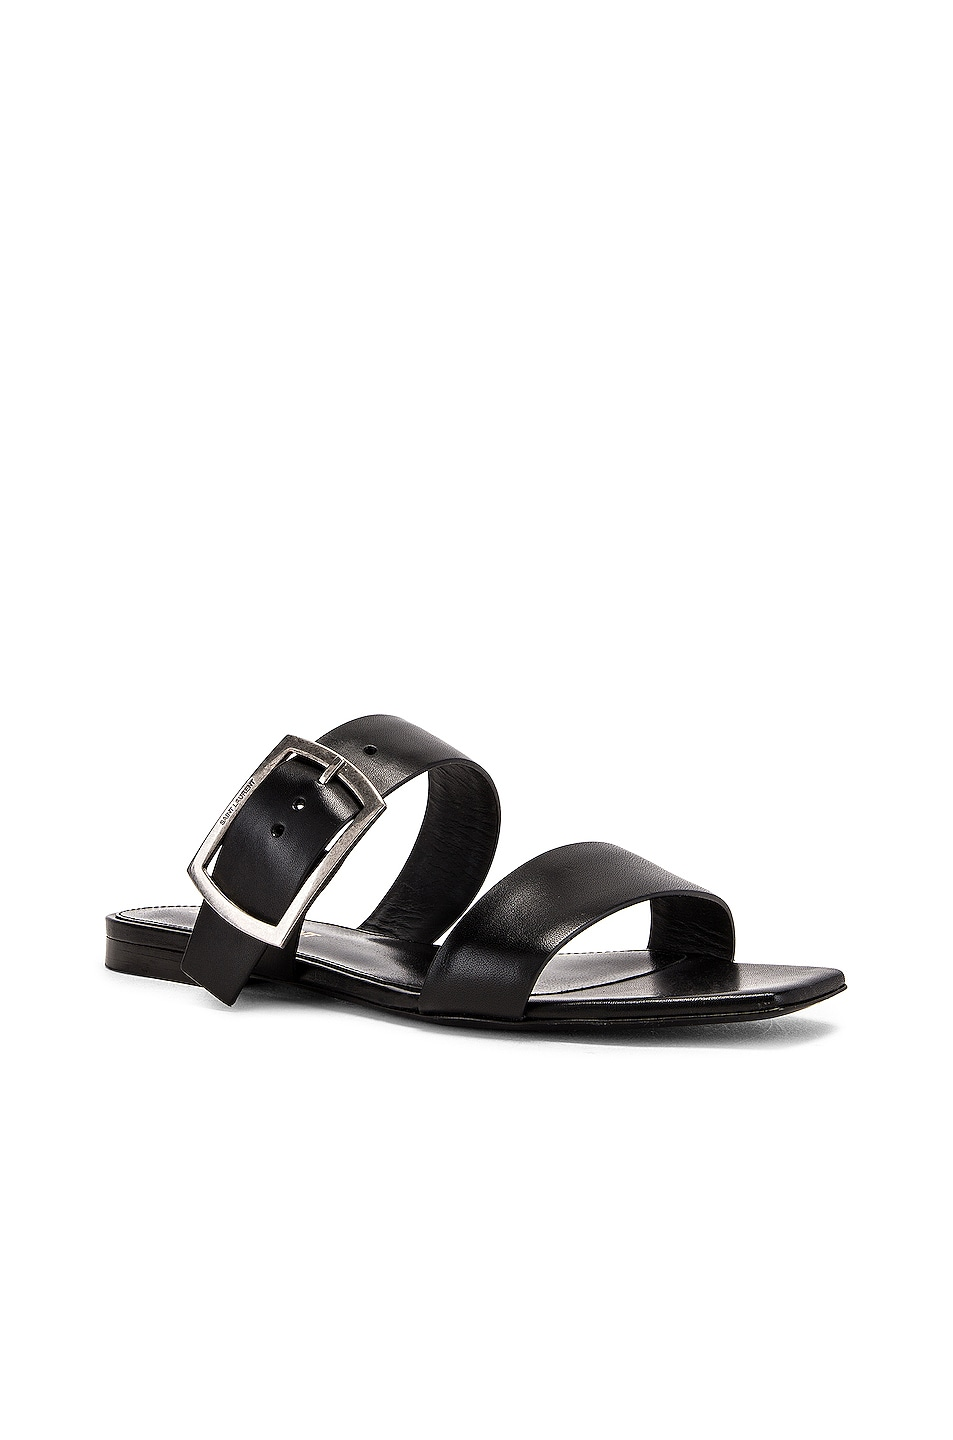 Image 2 of Saint Laurent Jodie Sandal in Black